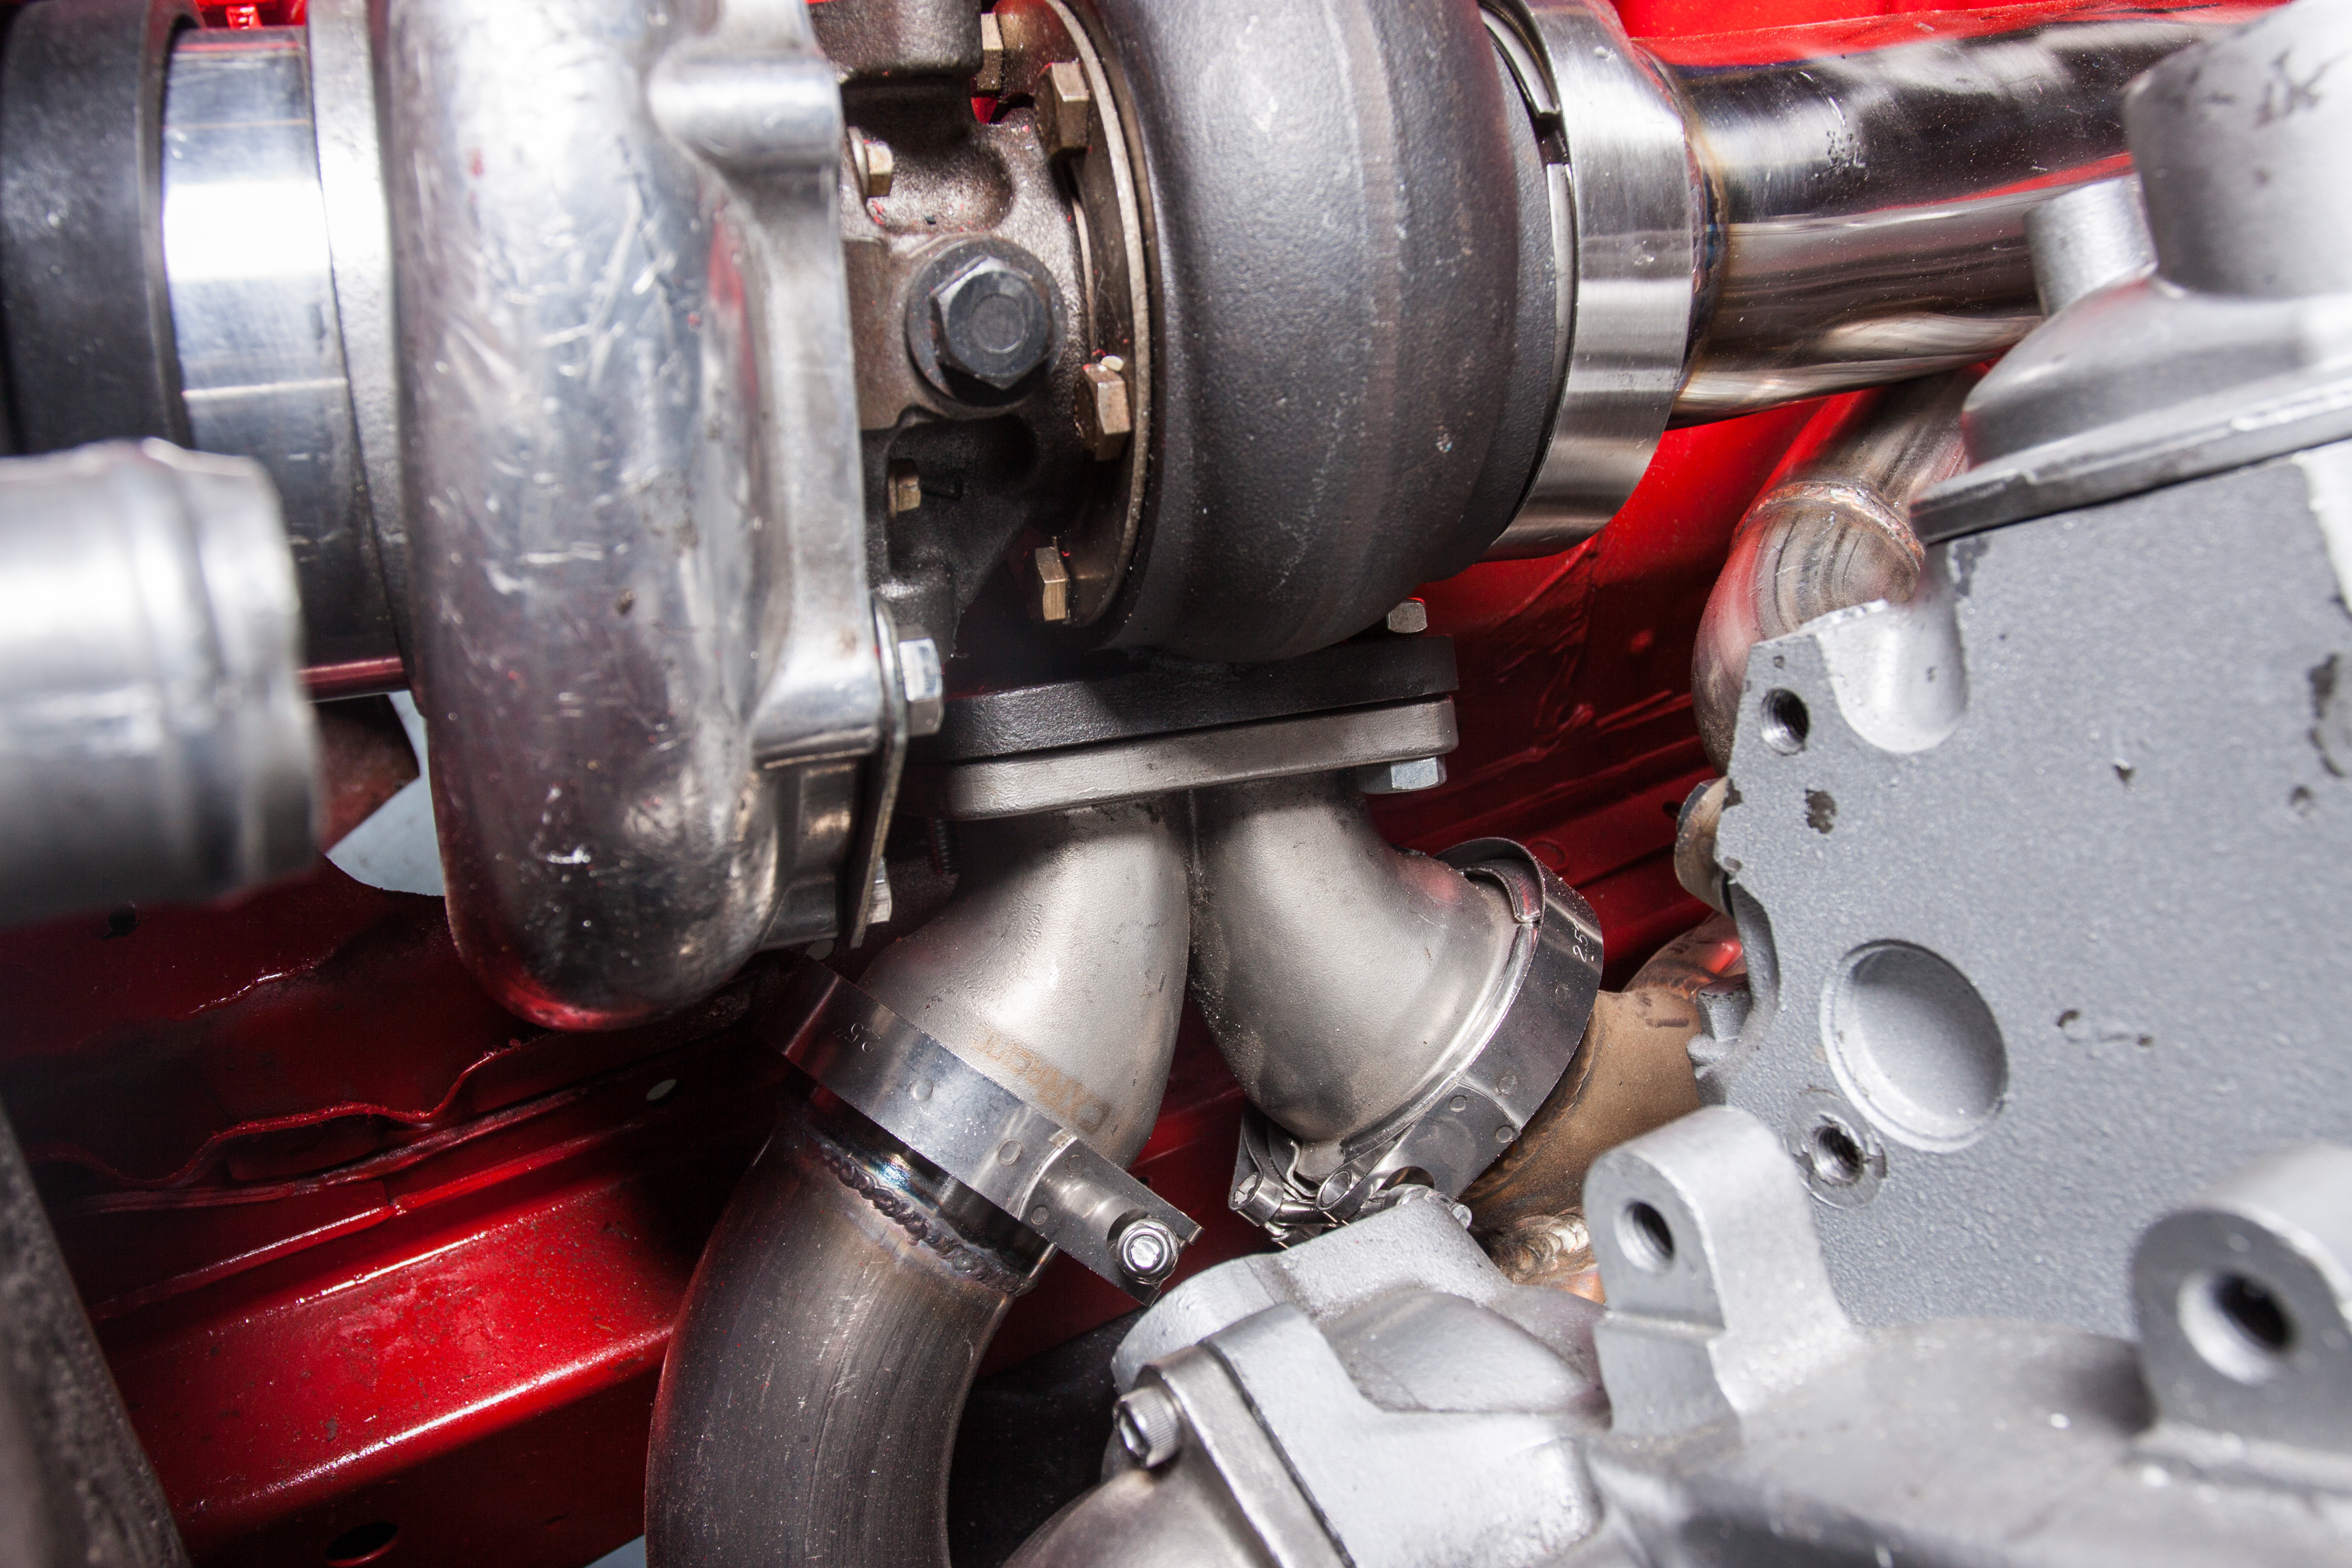 Turbo Manifold Downpipe Intercooler Kit 240sx S13 S14 Ls1 Lsx Engine Fuel Filter Optional Dual Ball Bearing Is Available With 250 Extra Please Select The Option When Buying